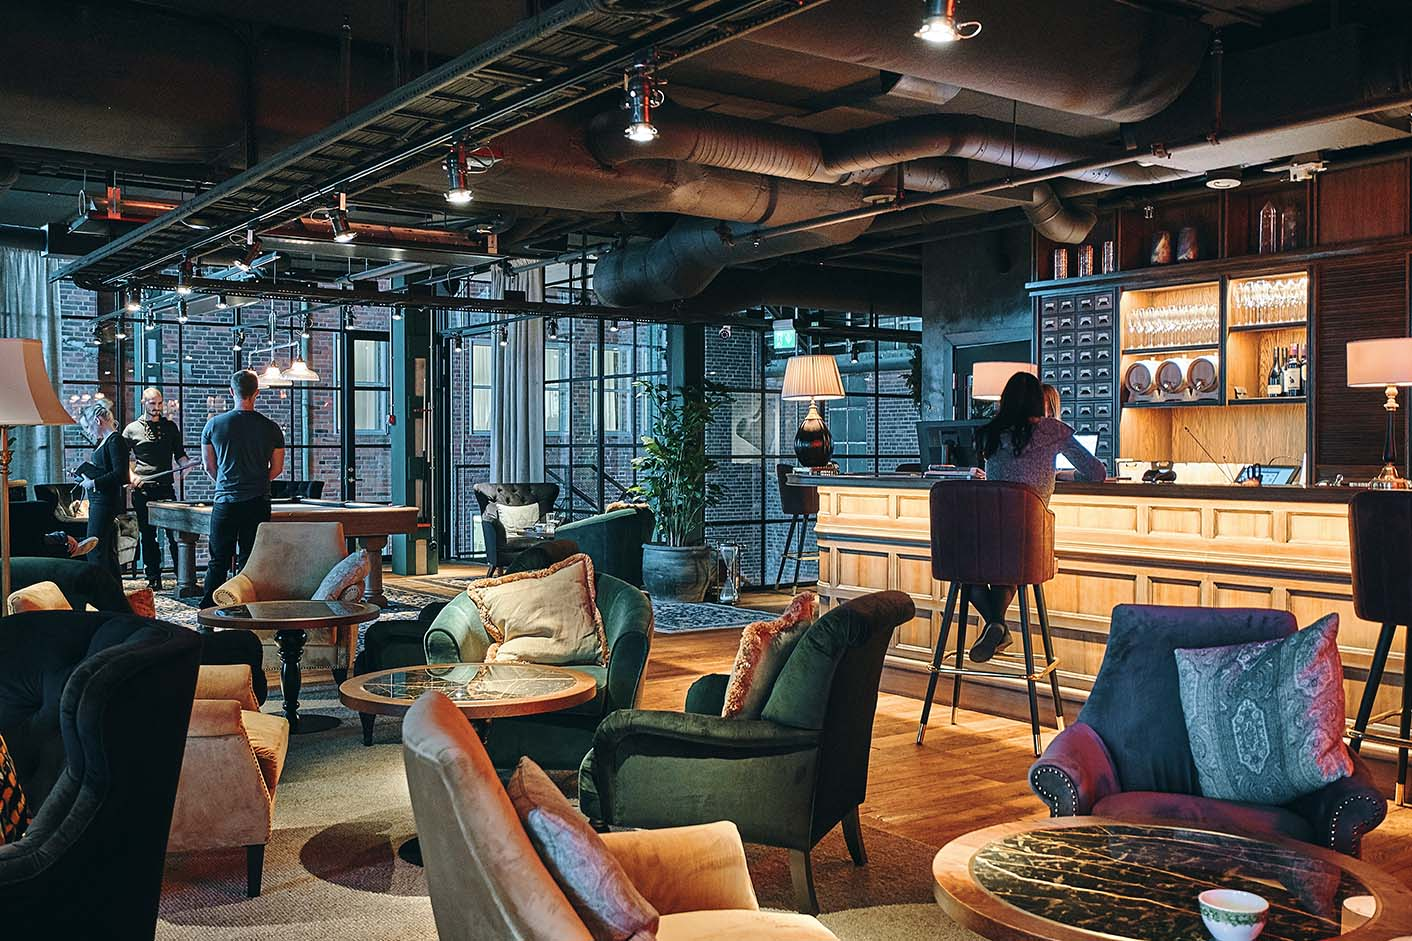 Boutiquehotell charmar med industriell romantik